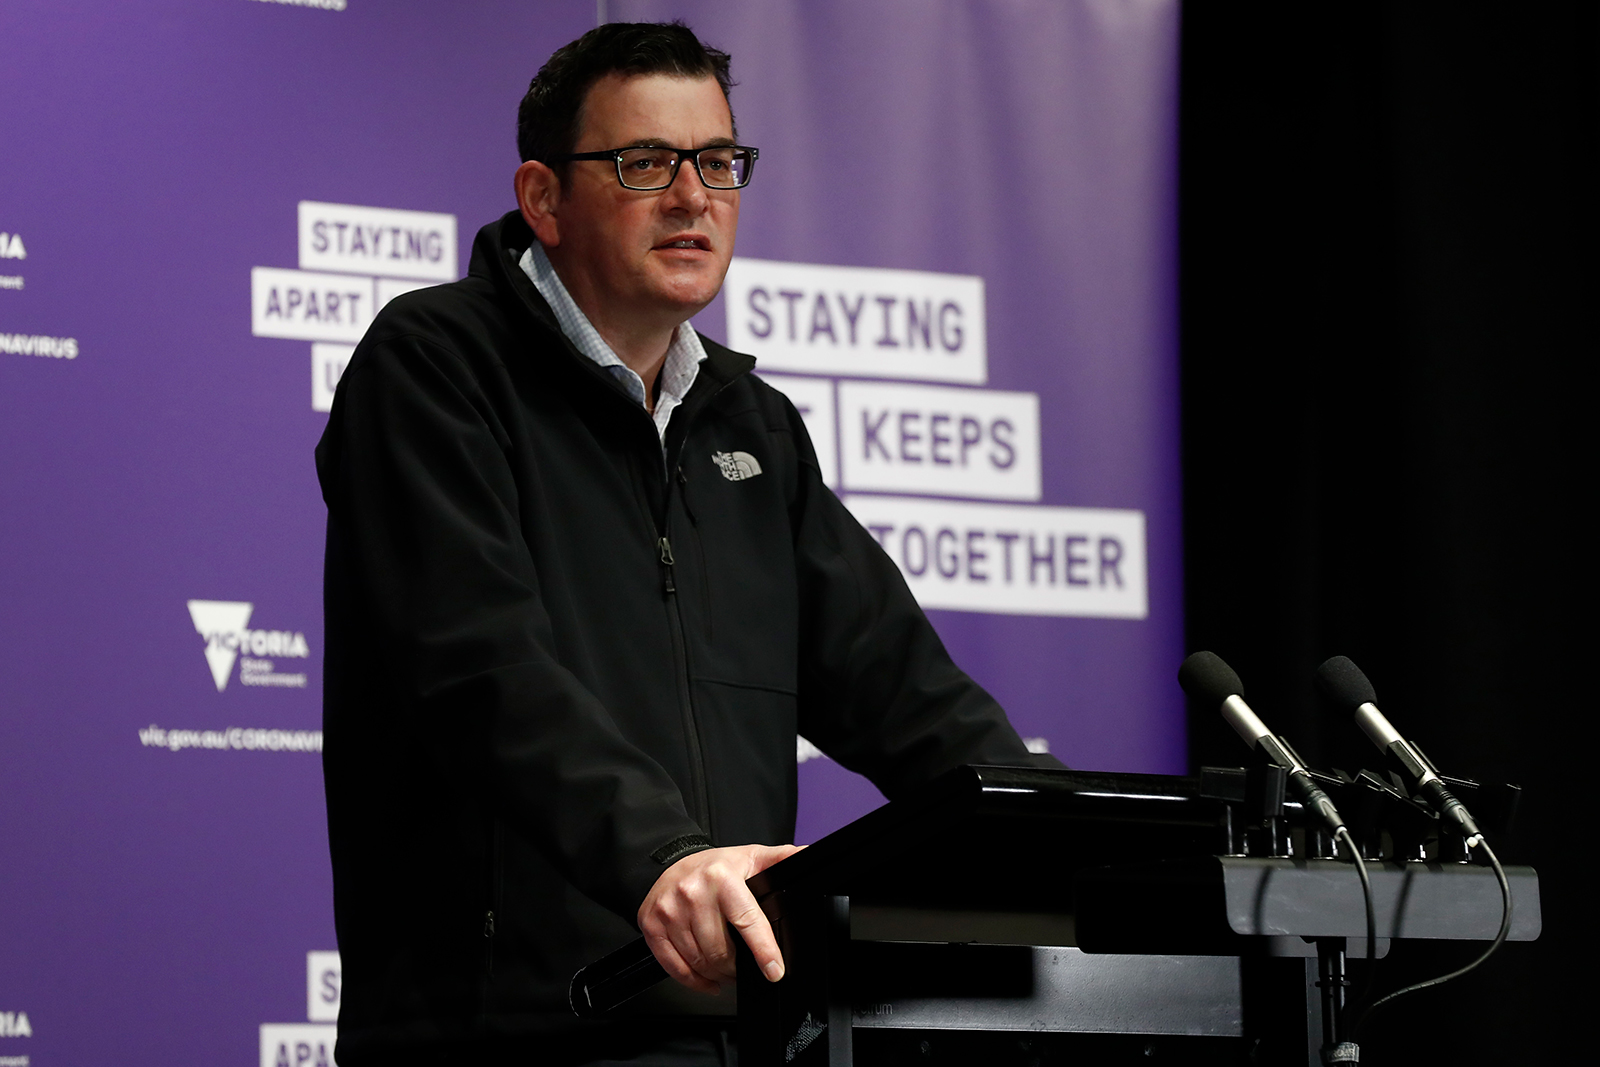 Victorian Premier Daniel Andrews speaks to the media at the daily briefing in Melbourne, Australia on August 09.